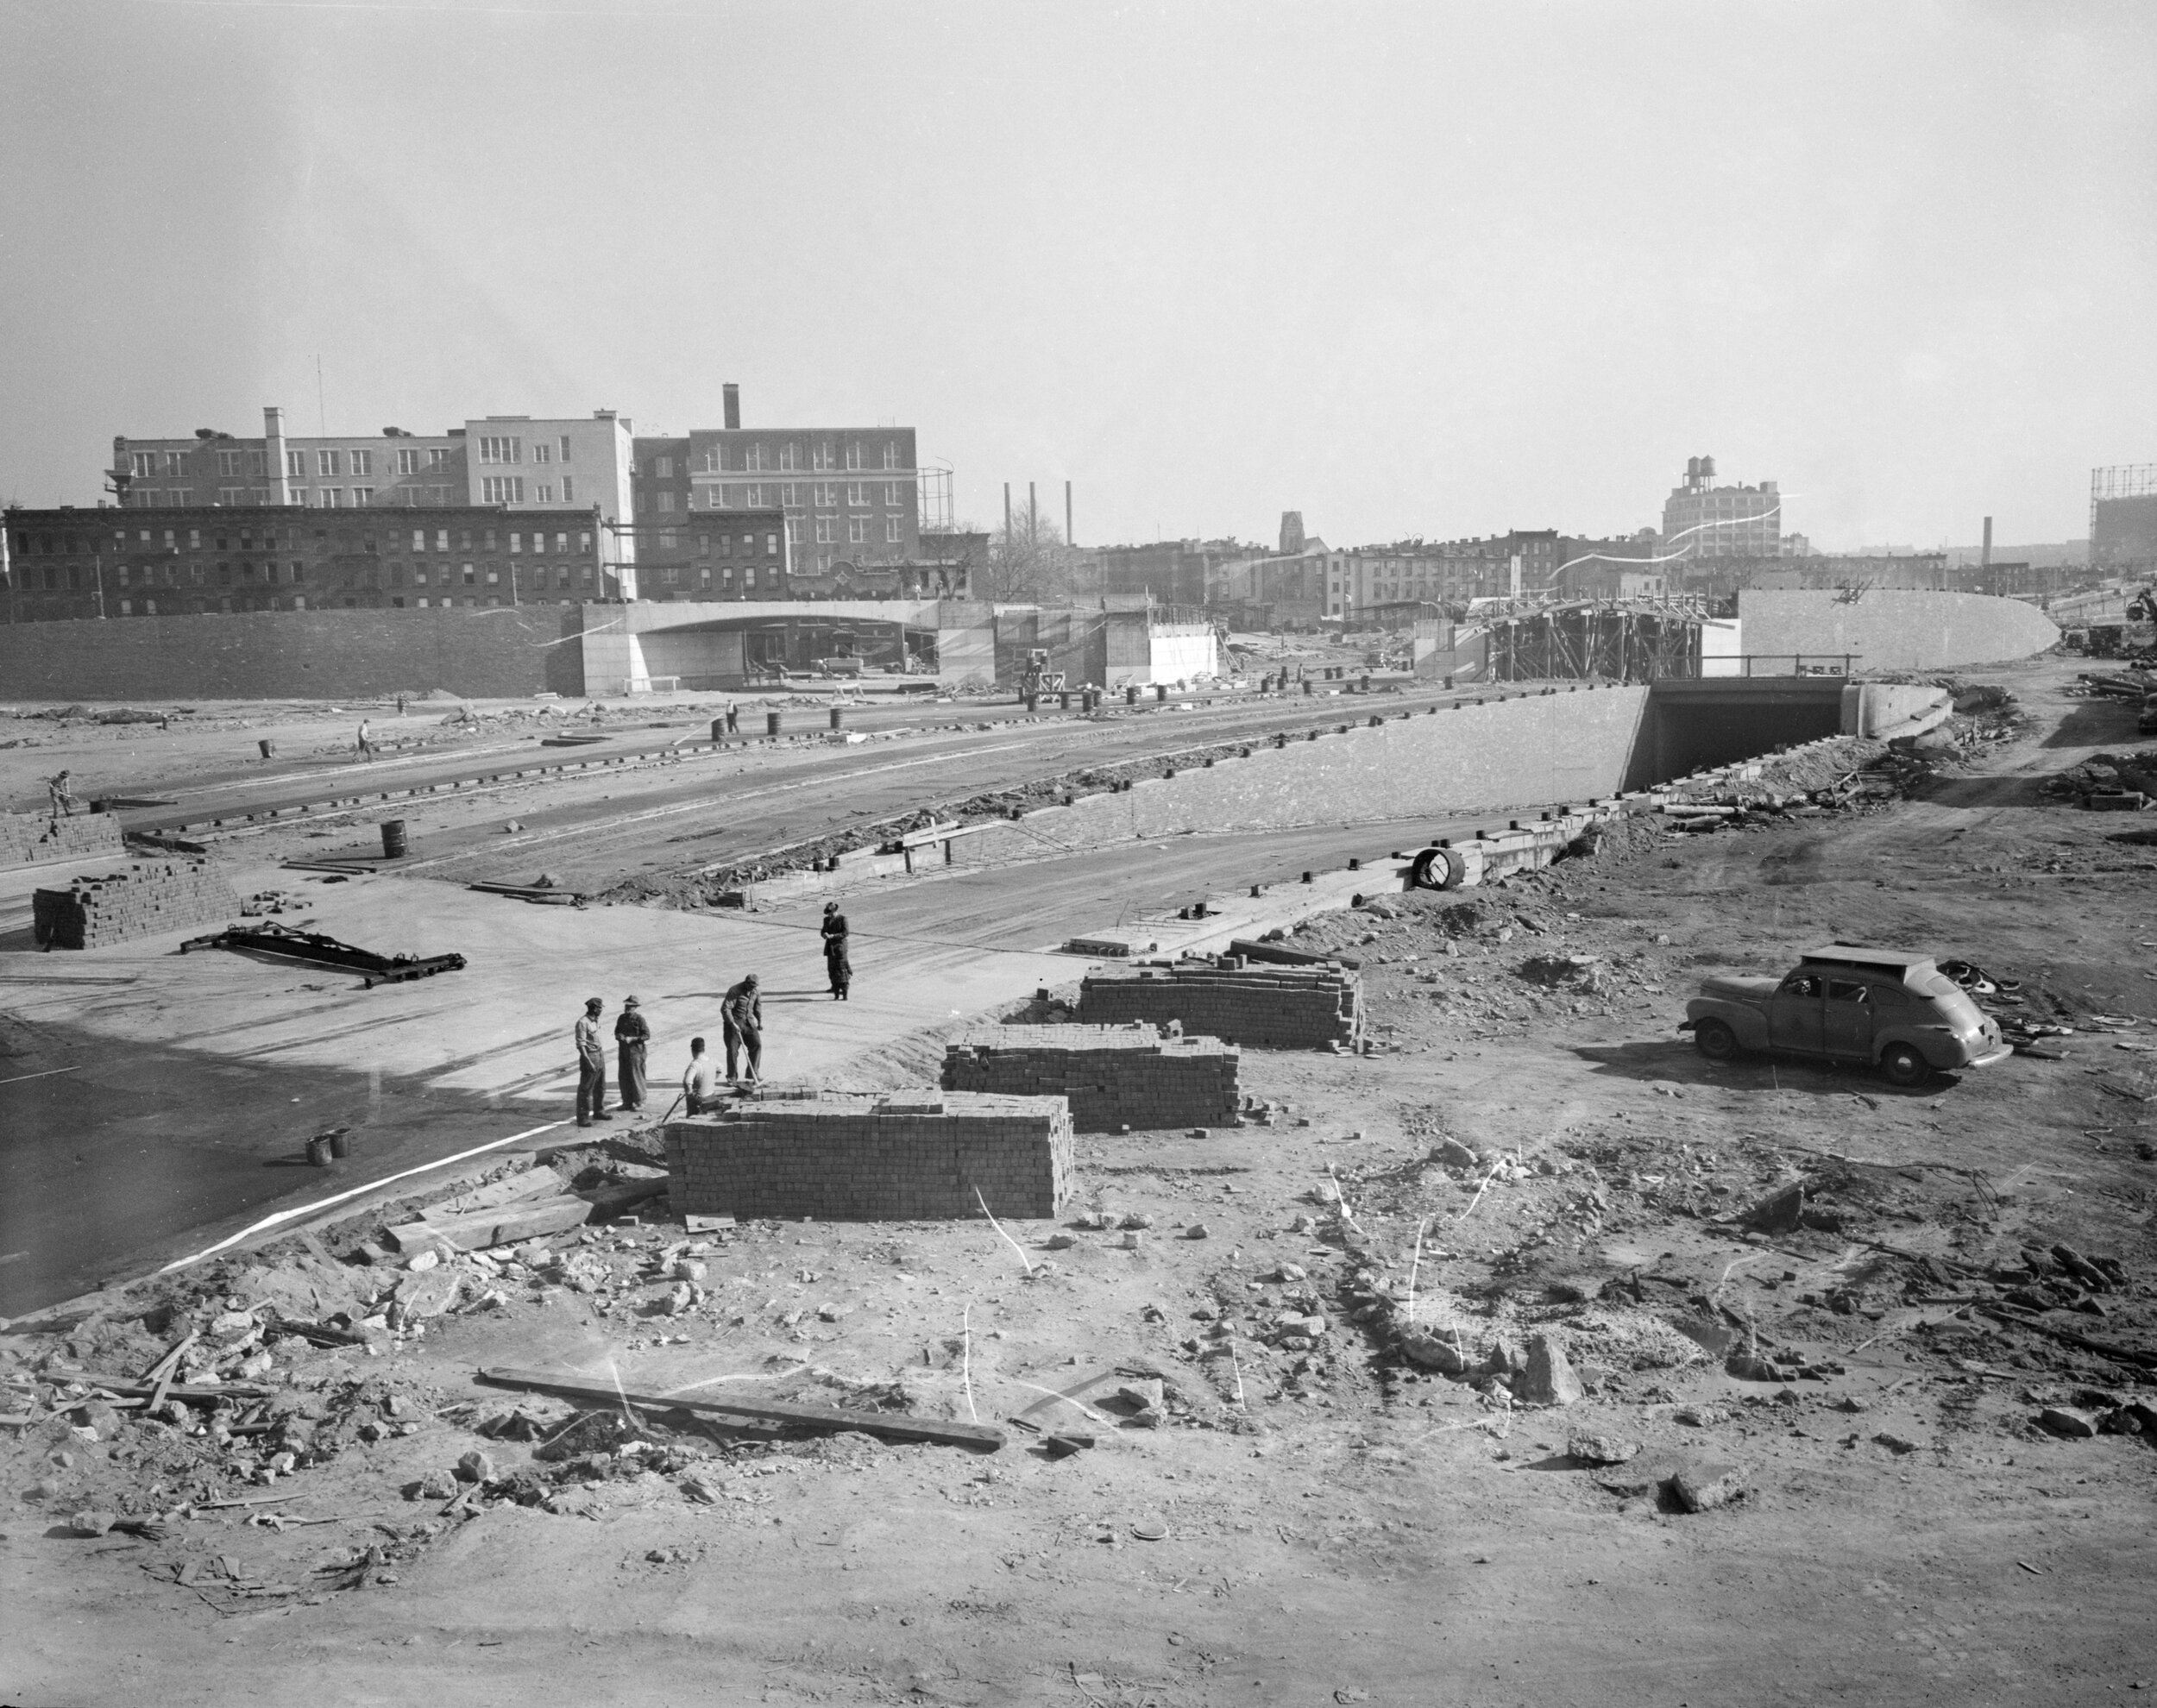 Construction of the approach to the Brooklyn Battery Tunnel in Brooklyn, November 10, 1948. NYC Municipal Archives. Department of Parks and Recreation Collection, NYC Municipal Archives.